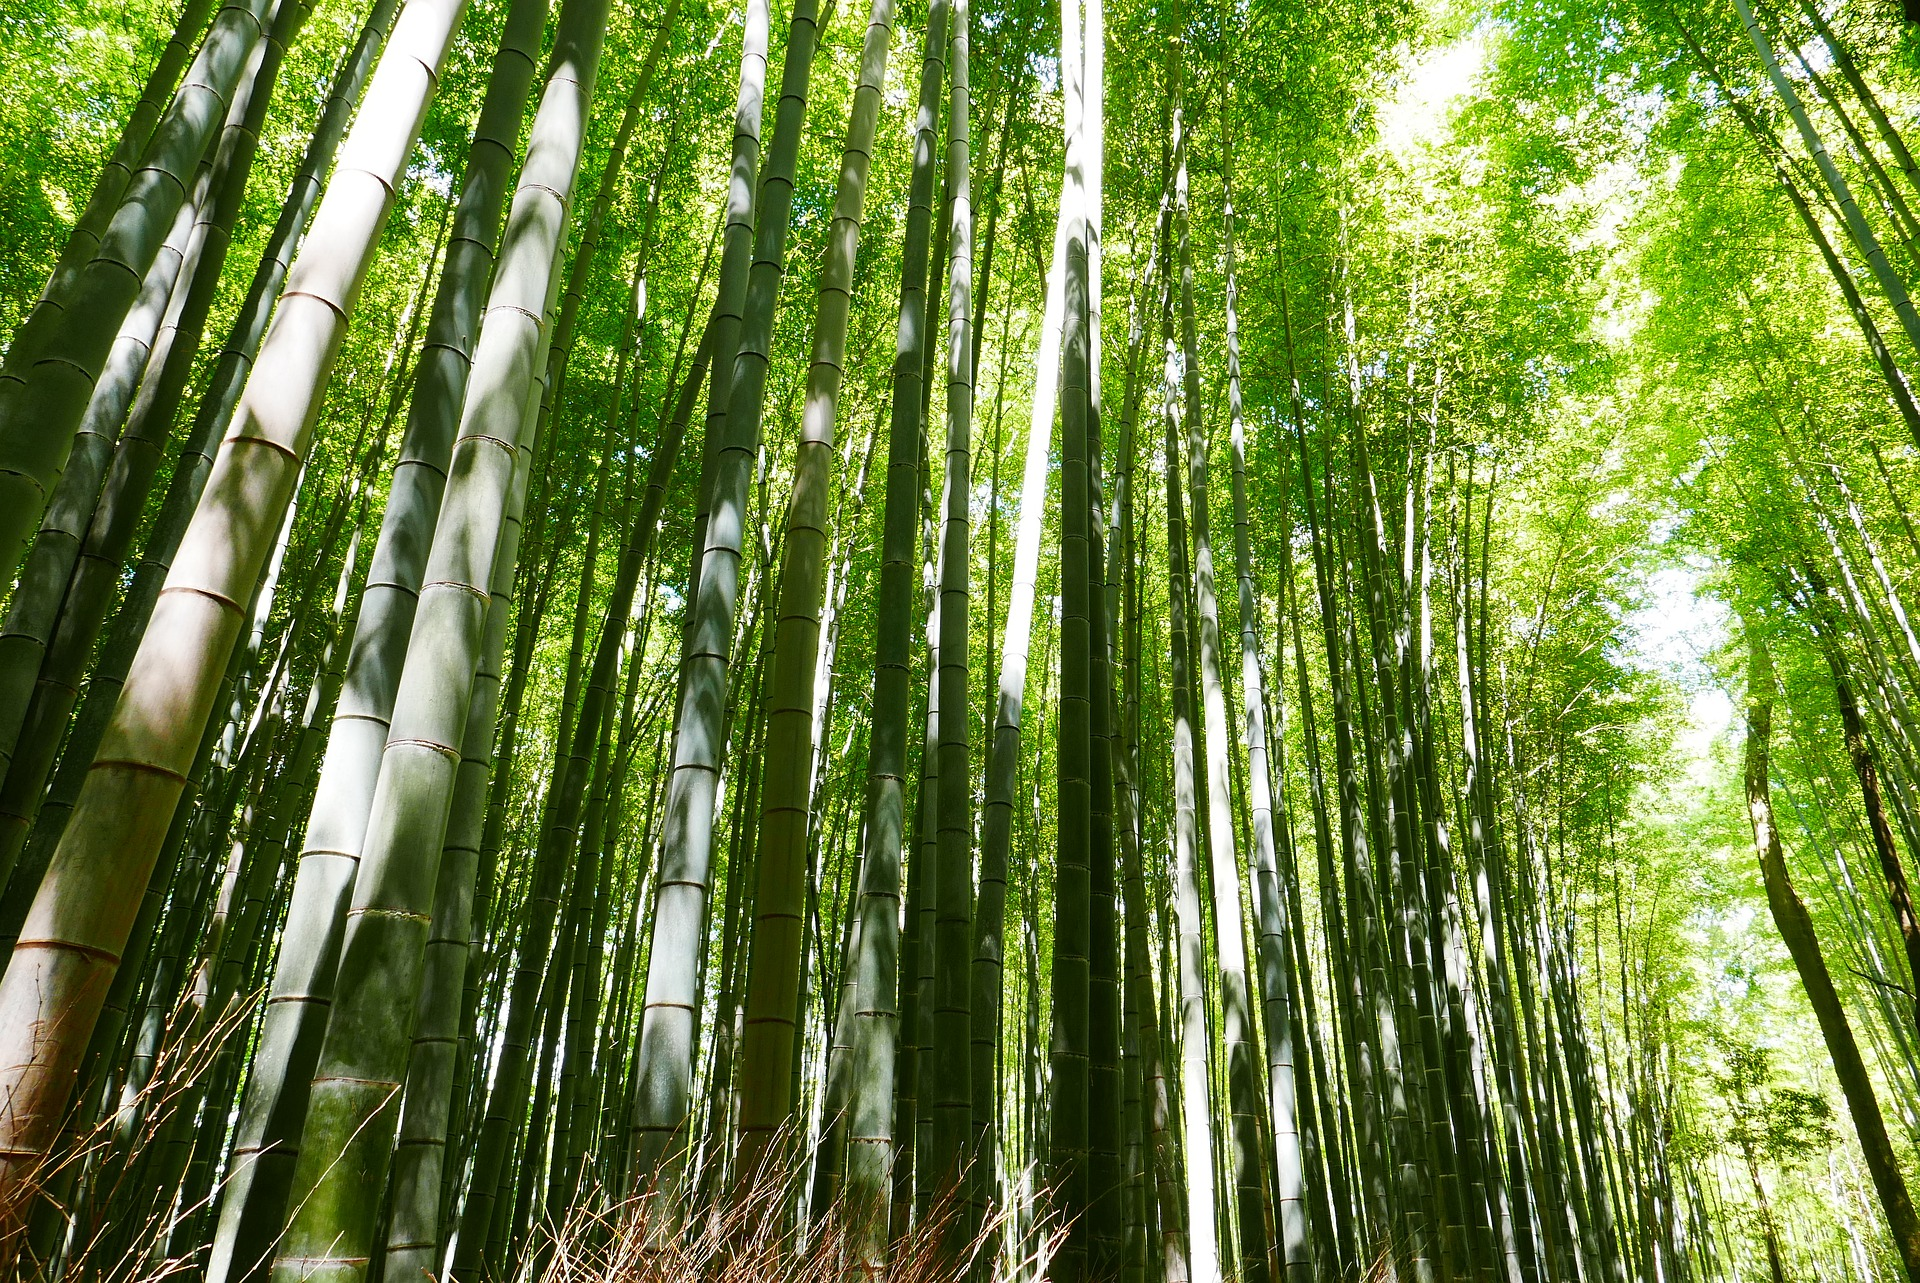 Bamboo - is a raw material of natural origin, has long been used by man in everyday life. More than two centuries ago it was used for the construction of houses, bridges, boats, home paraphernalia, musical instruments. In eastern medicine, the plant was used as a sedative and cosmetic 69